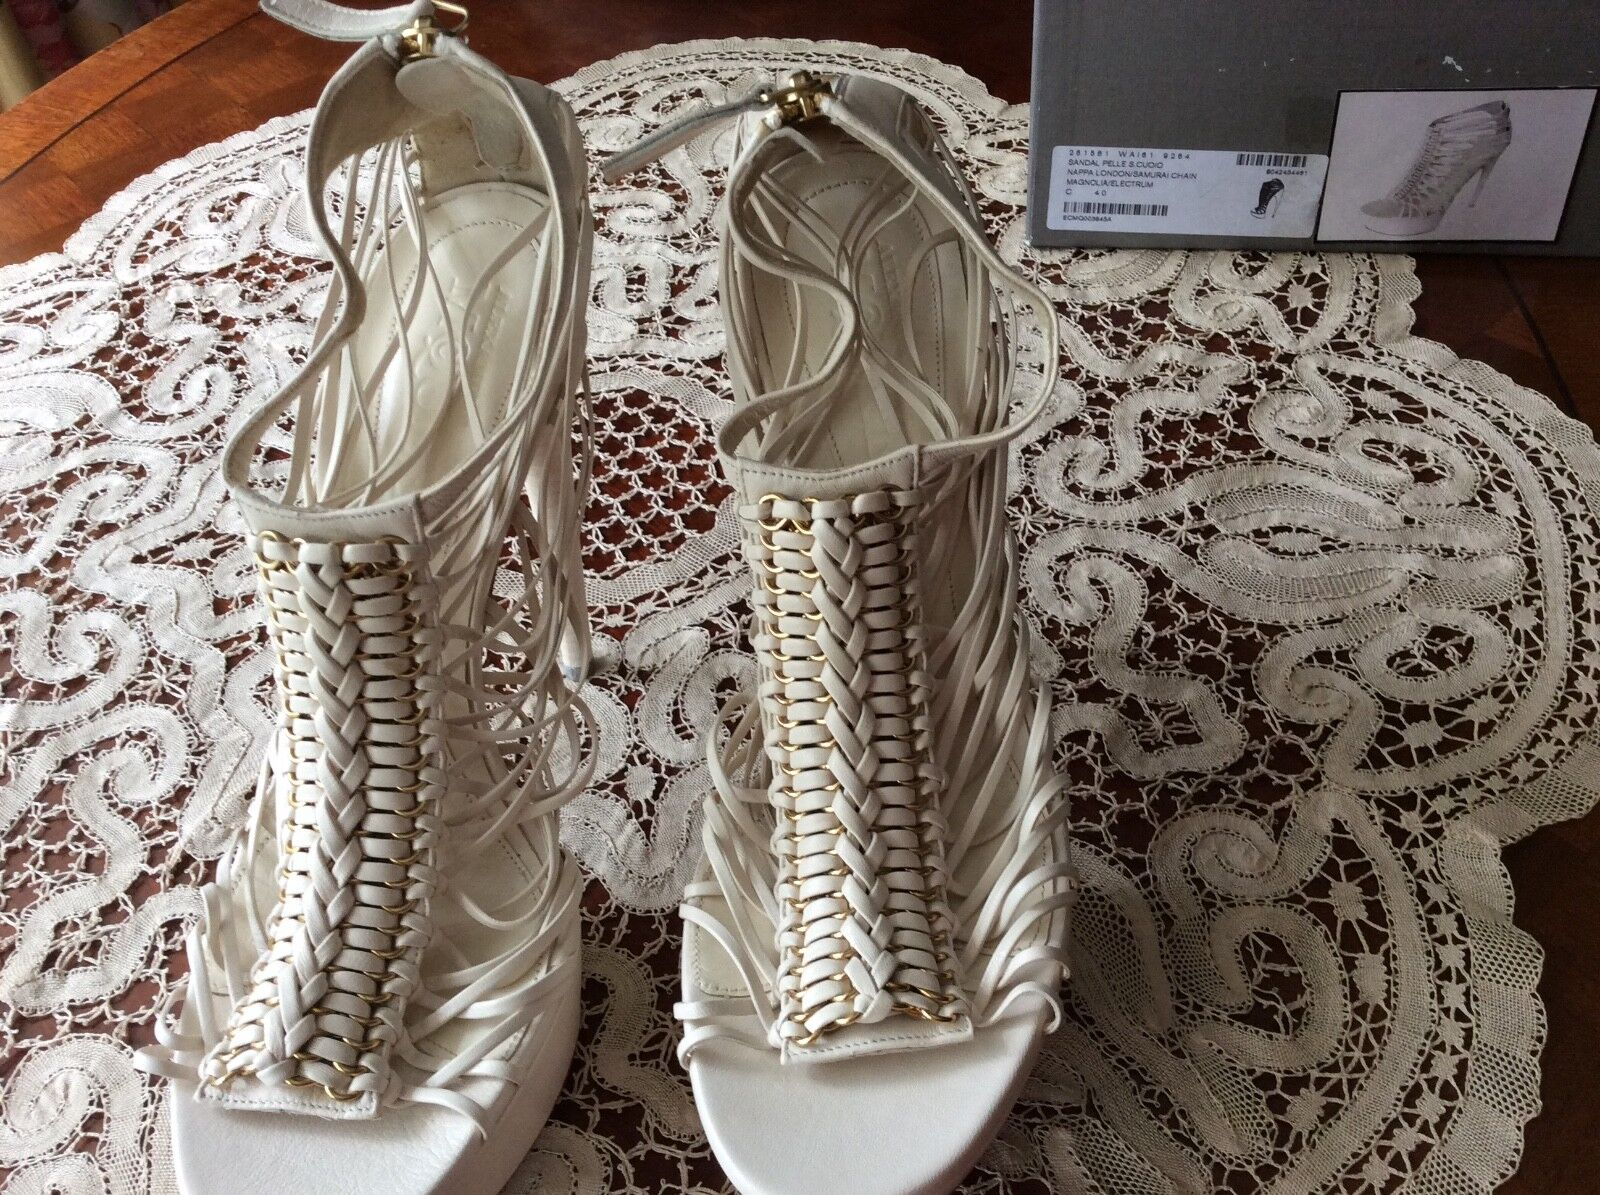 ALEXANDER MCQUEEN BRAND NEW SHOES with it's own box